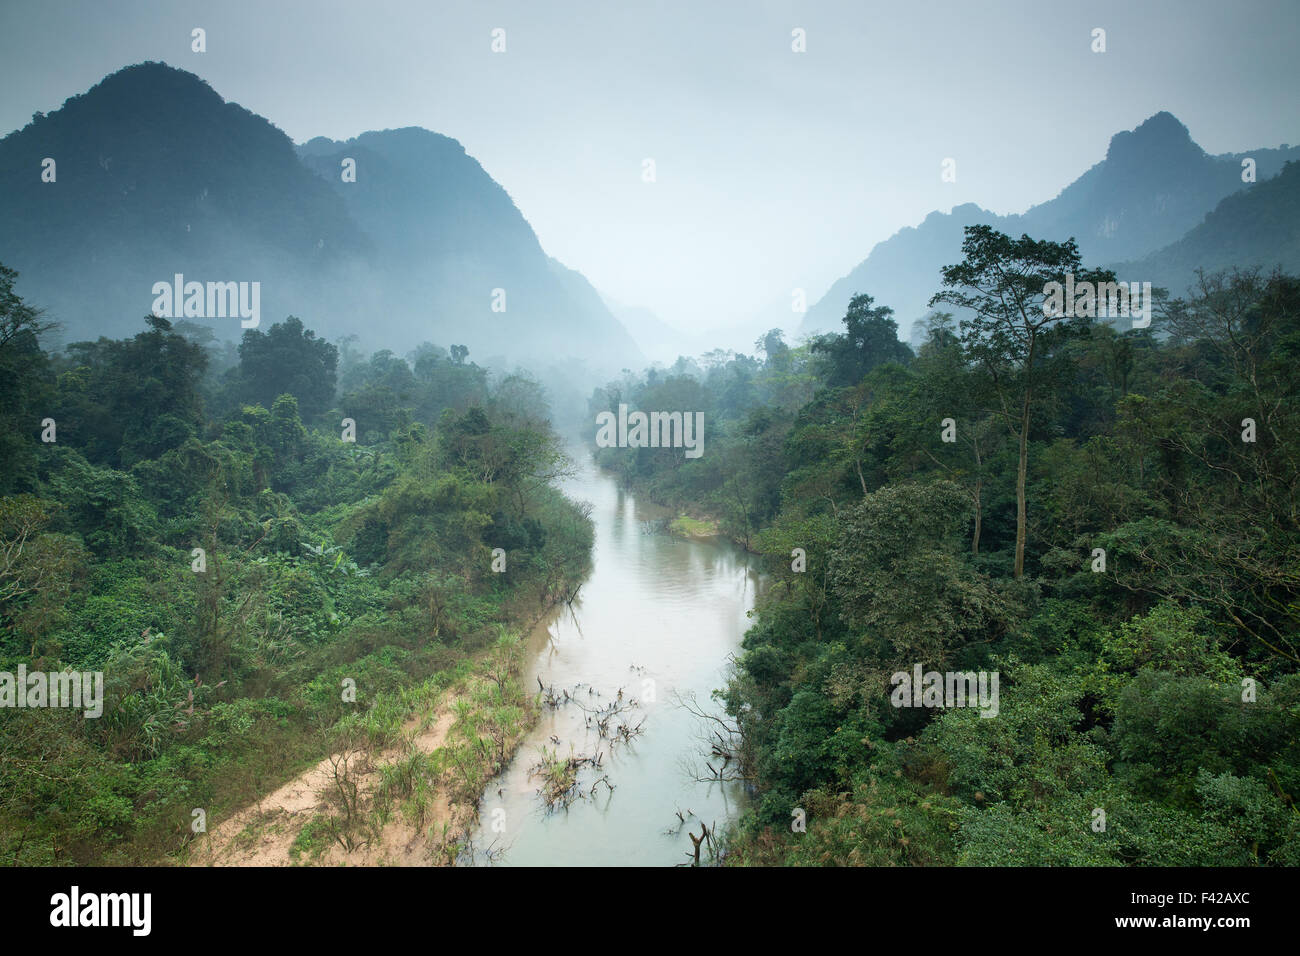 Phong Nha-Kẻ Bàng is a national park and UNESCO World Heritage Site , Quảng Bình Province, Vietnam - Stock Image